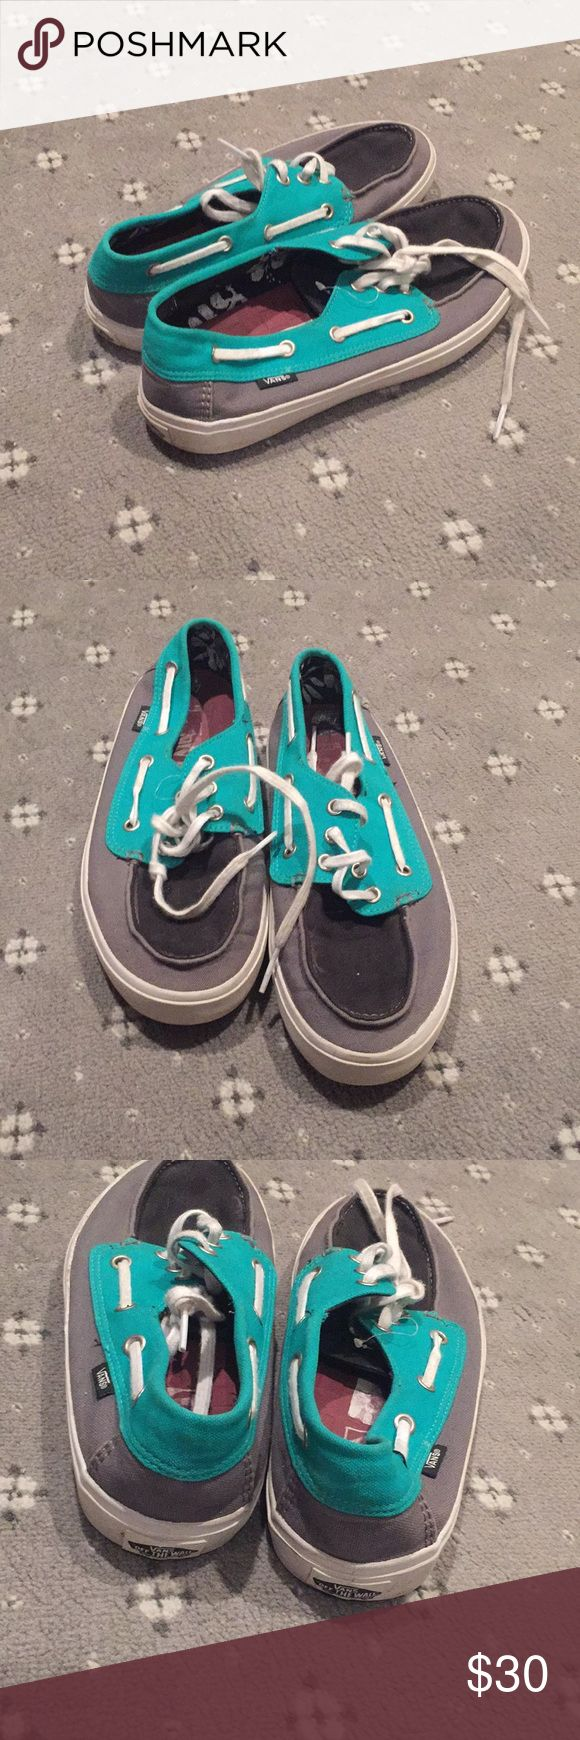 Van boat shoes Worn once! Vans Shoes Boat Shoes